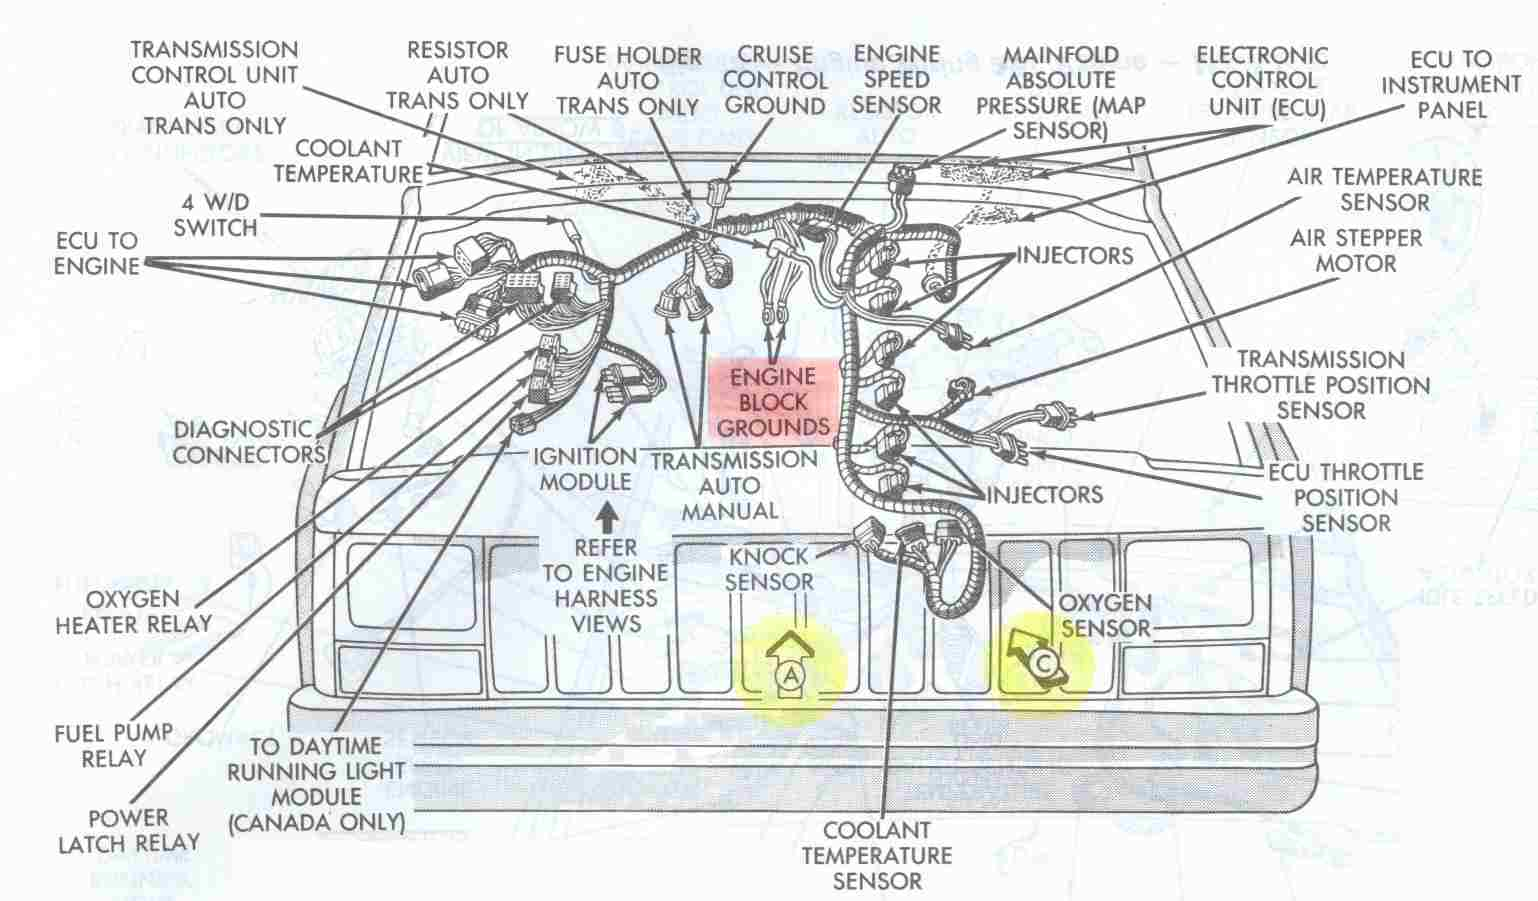 2004 Jeep Grand Cherokee Wiring Harness Diagram Just Data Liberty 1999 Engine Schema Cooling Fan